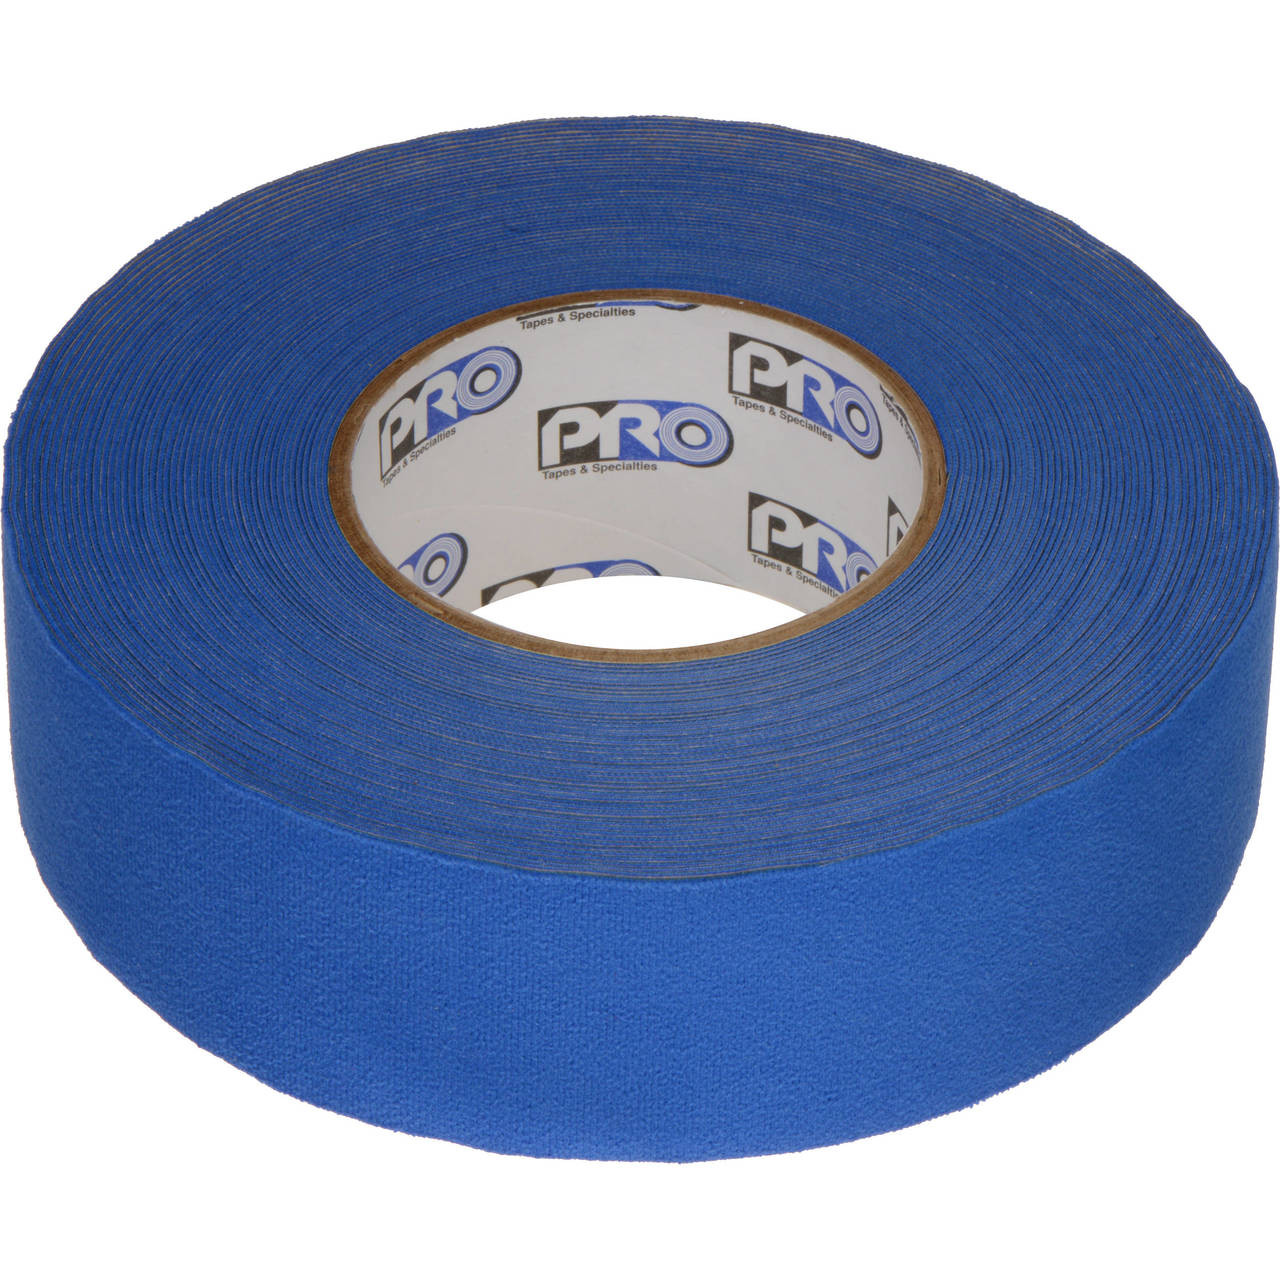 Pro Chroma-  Cloth Tape - Blue